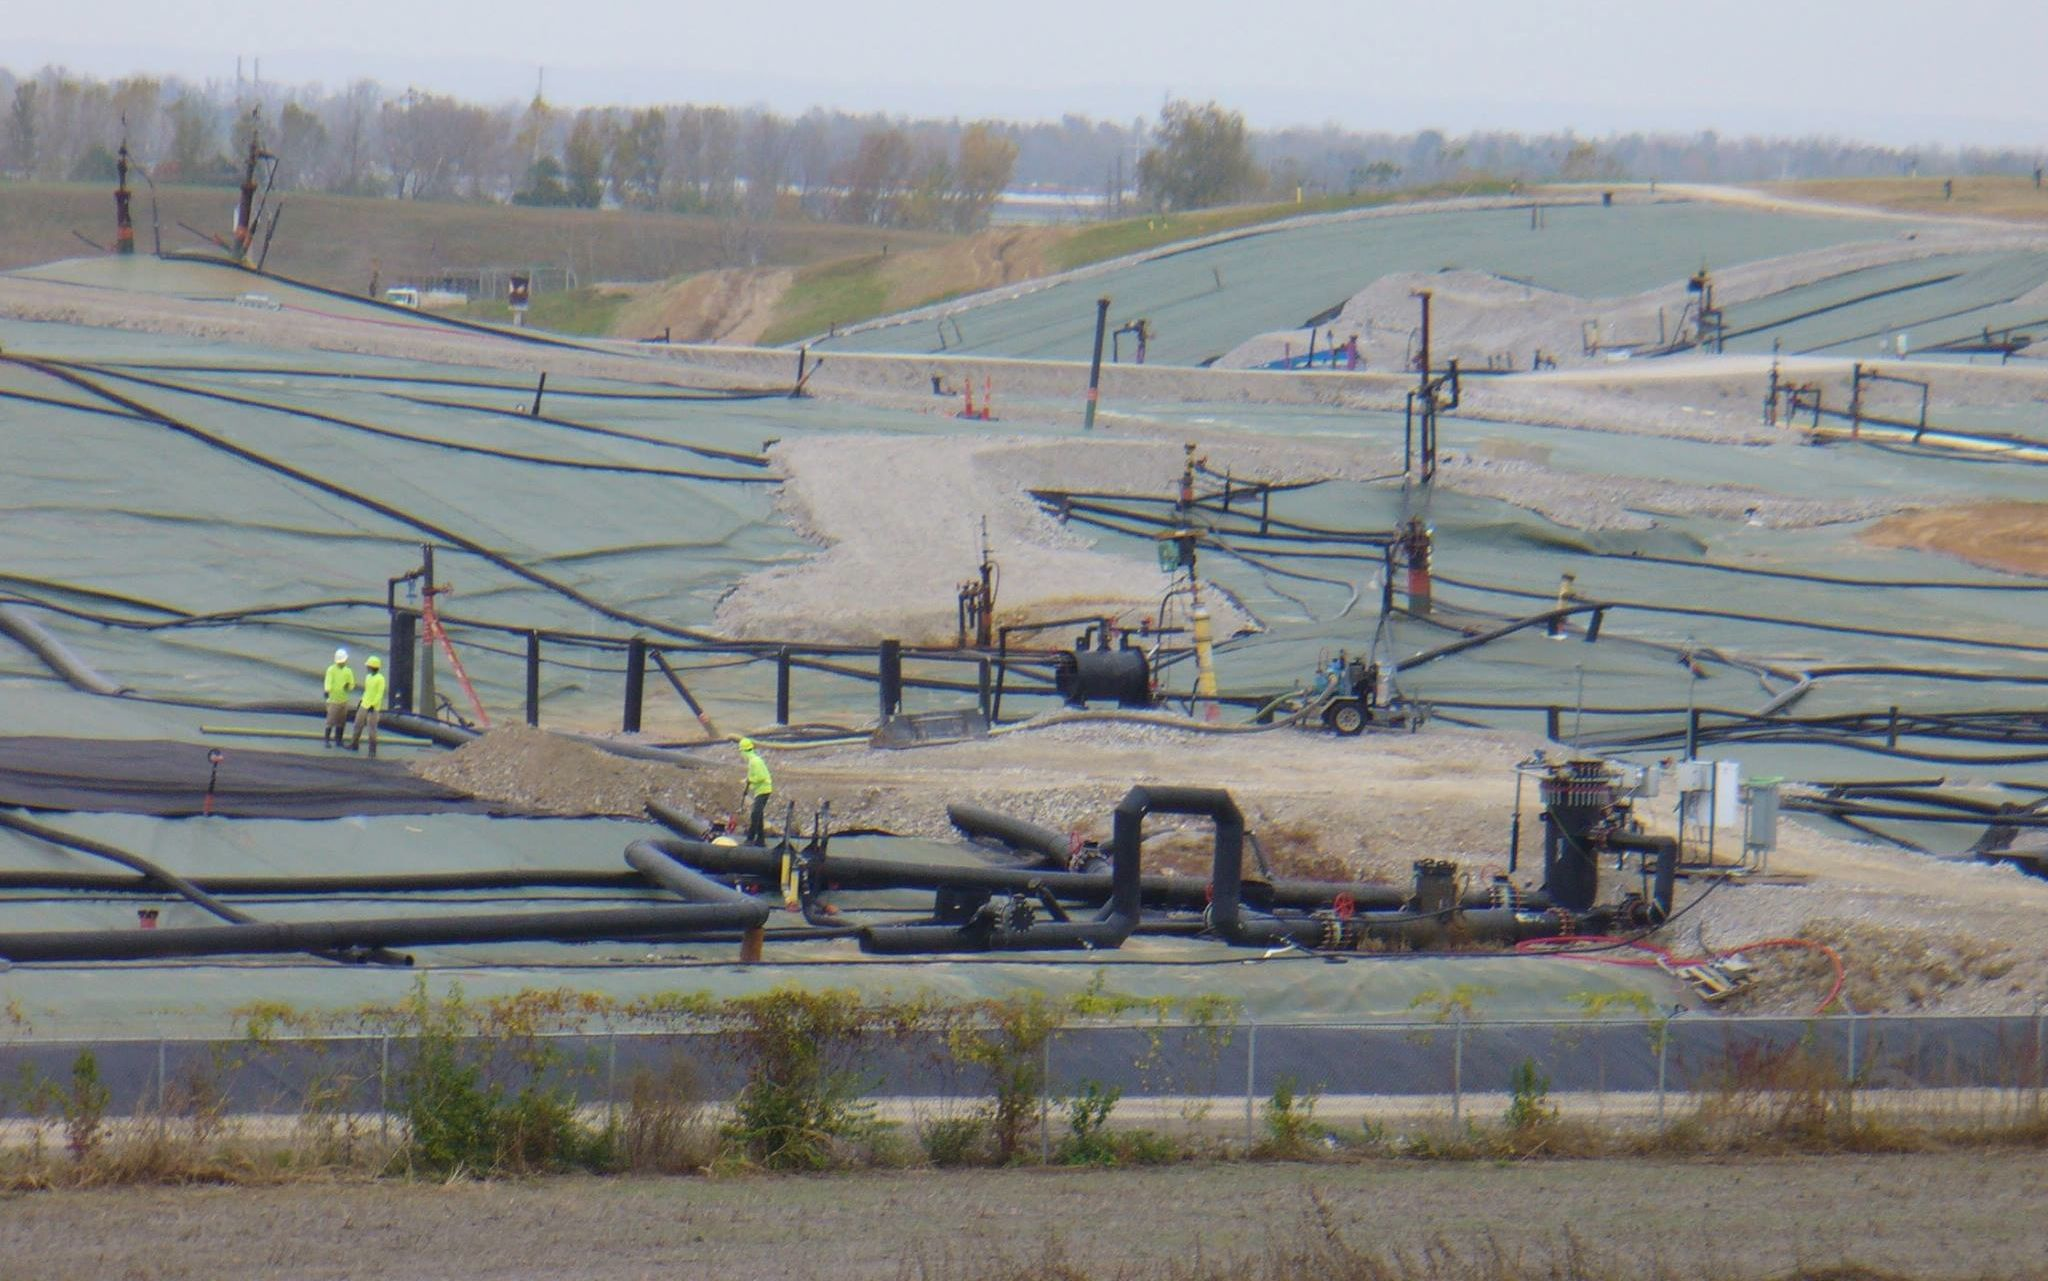 Ongoing St. Louis Nuclear Nightmare: West Lake Landfill Fire – Dawn Chapman, Jan Huber – Nuclear Hotseat #306By nhadmin on May 3, 2017